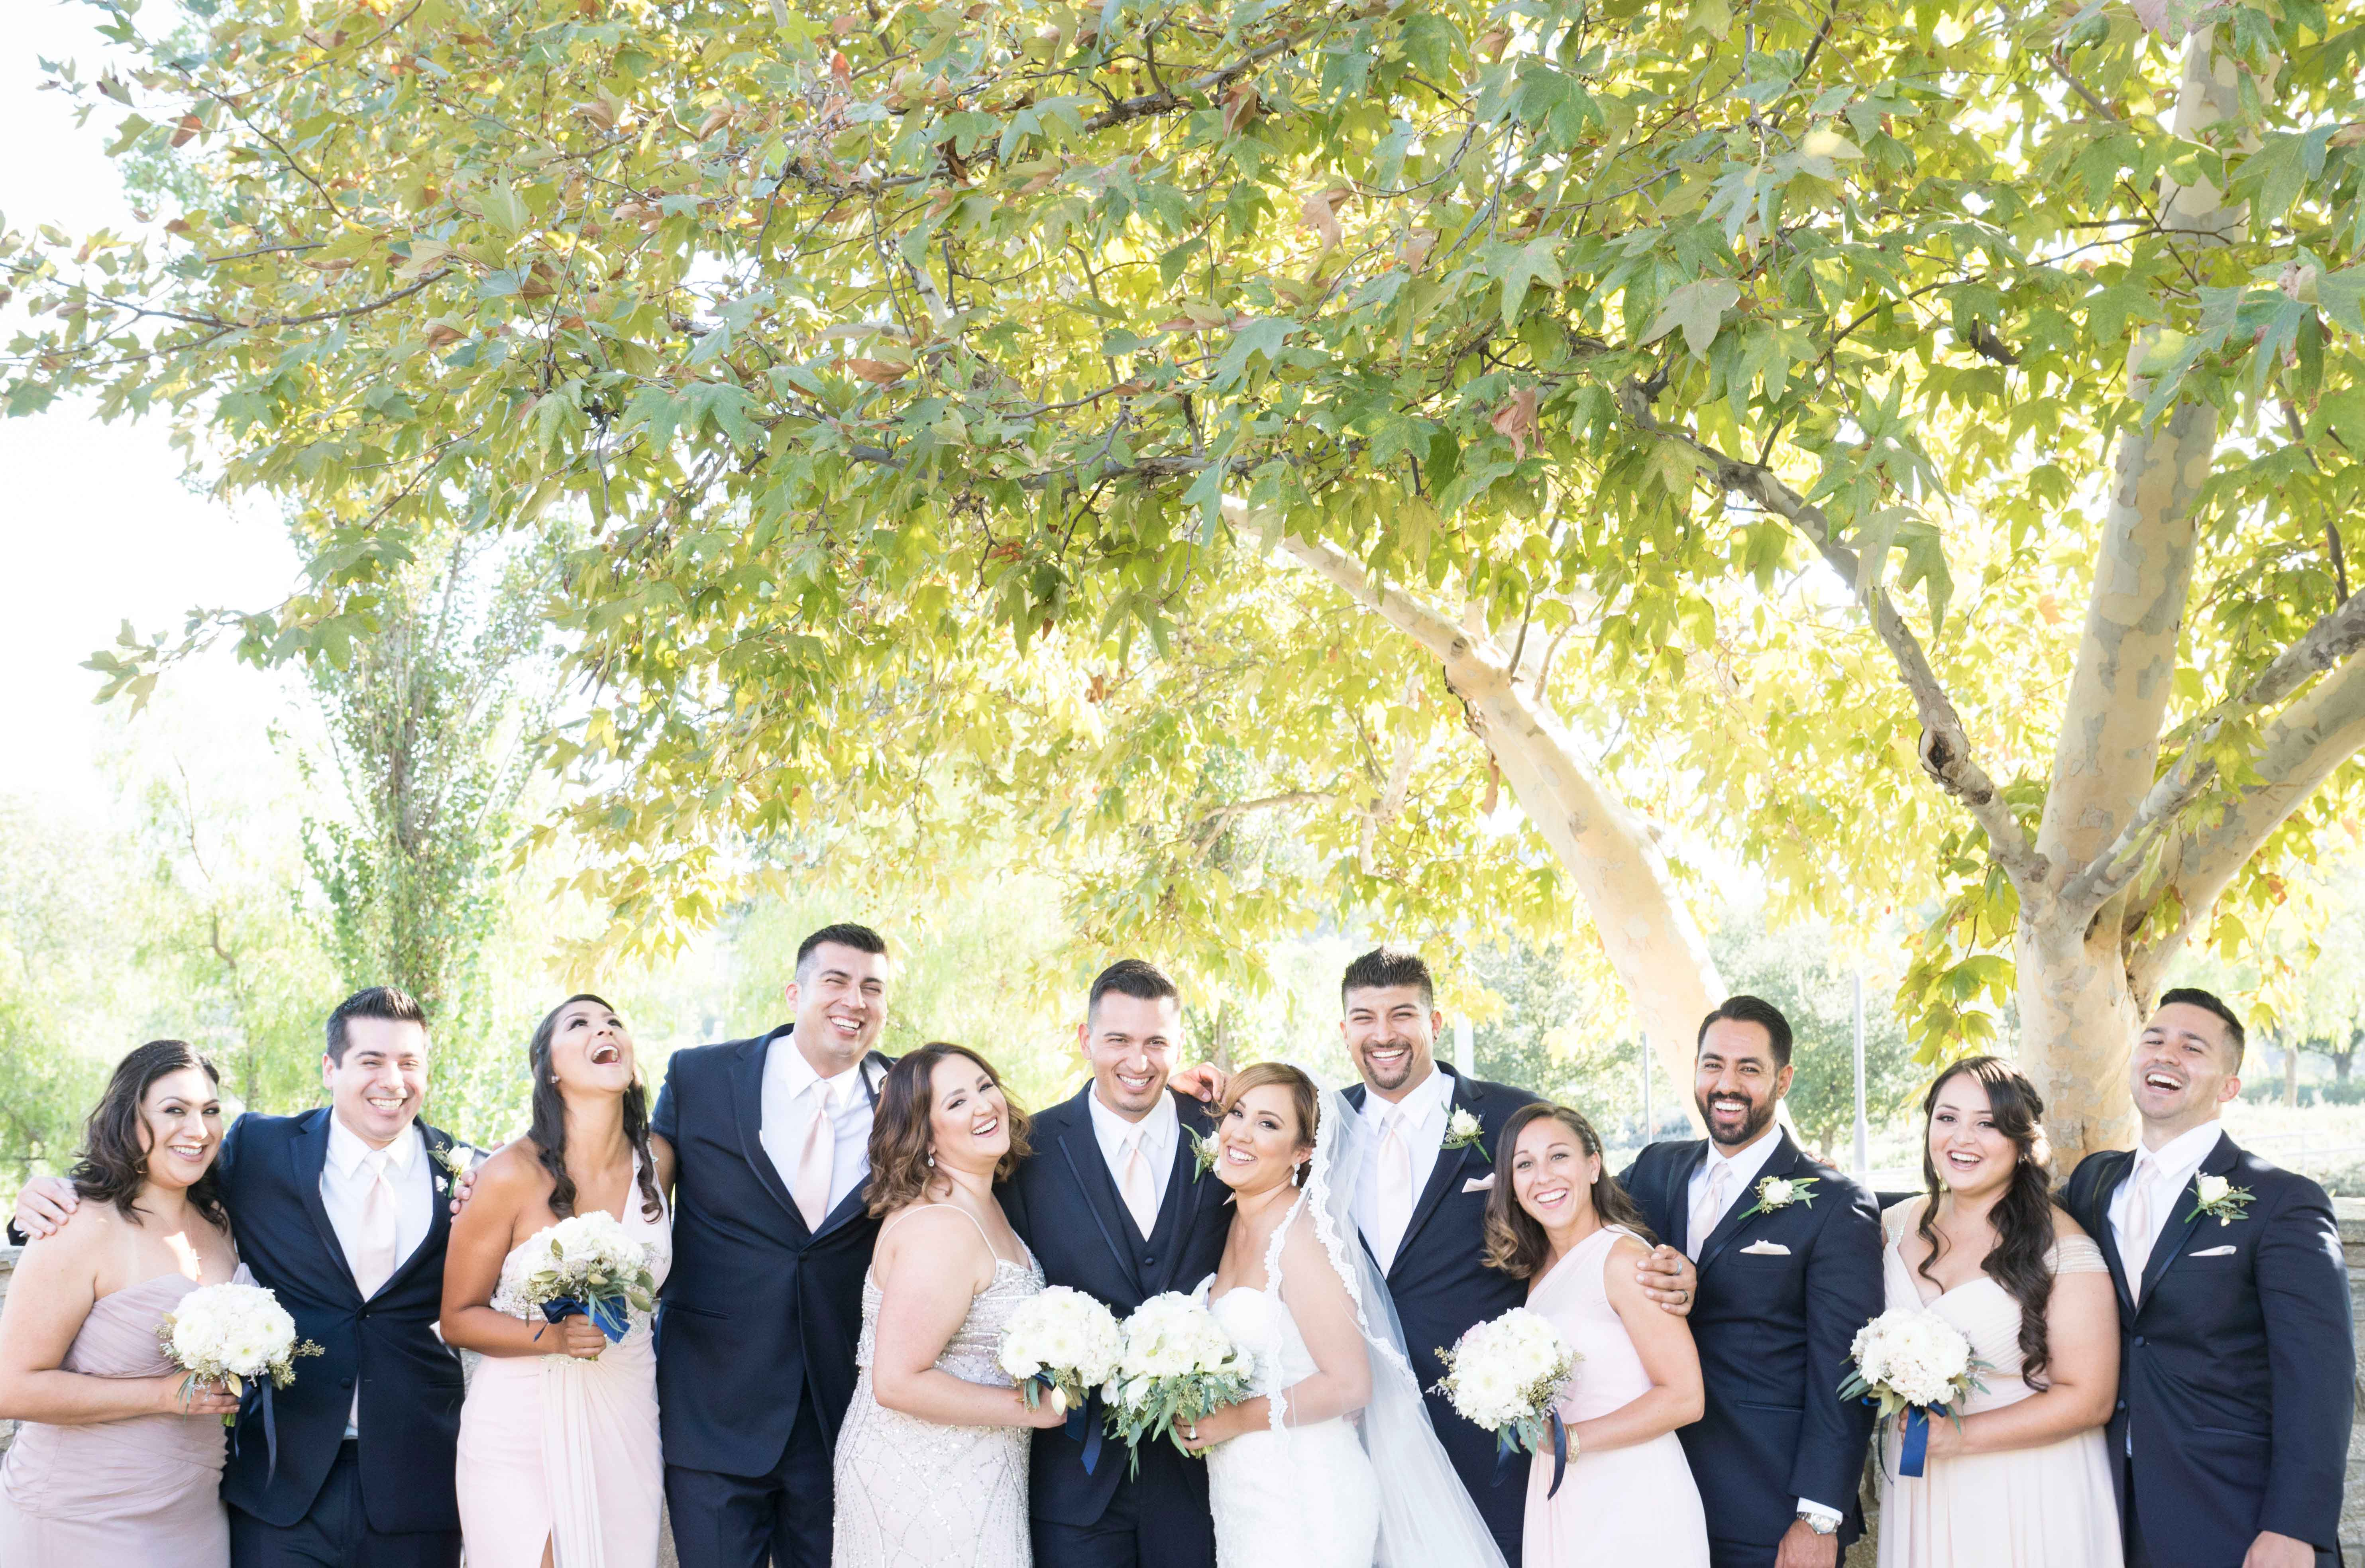 bridal party with bridesmaids and groomsmen alternating, arms around shoulders and laughing